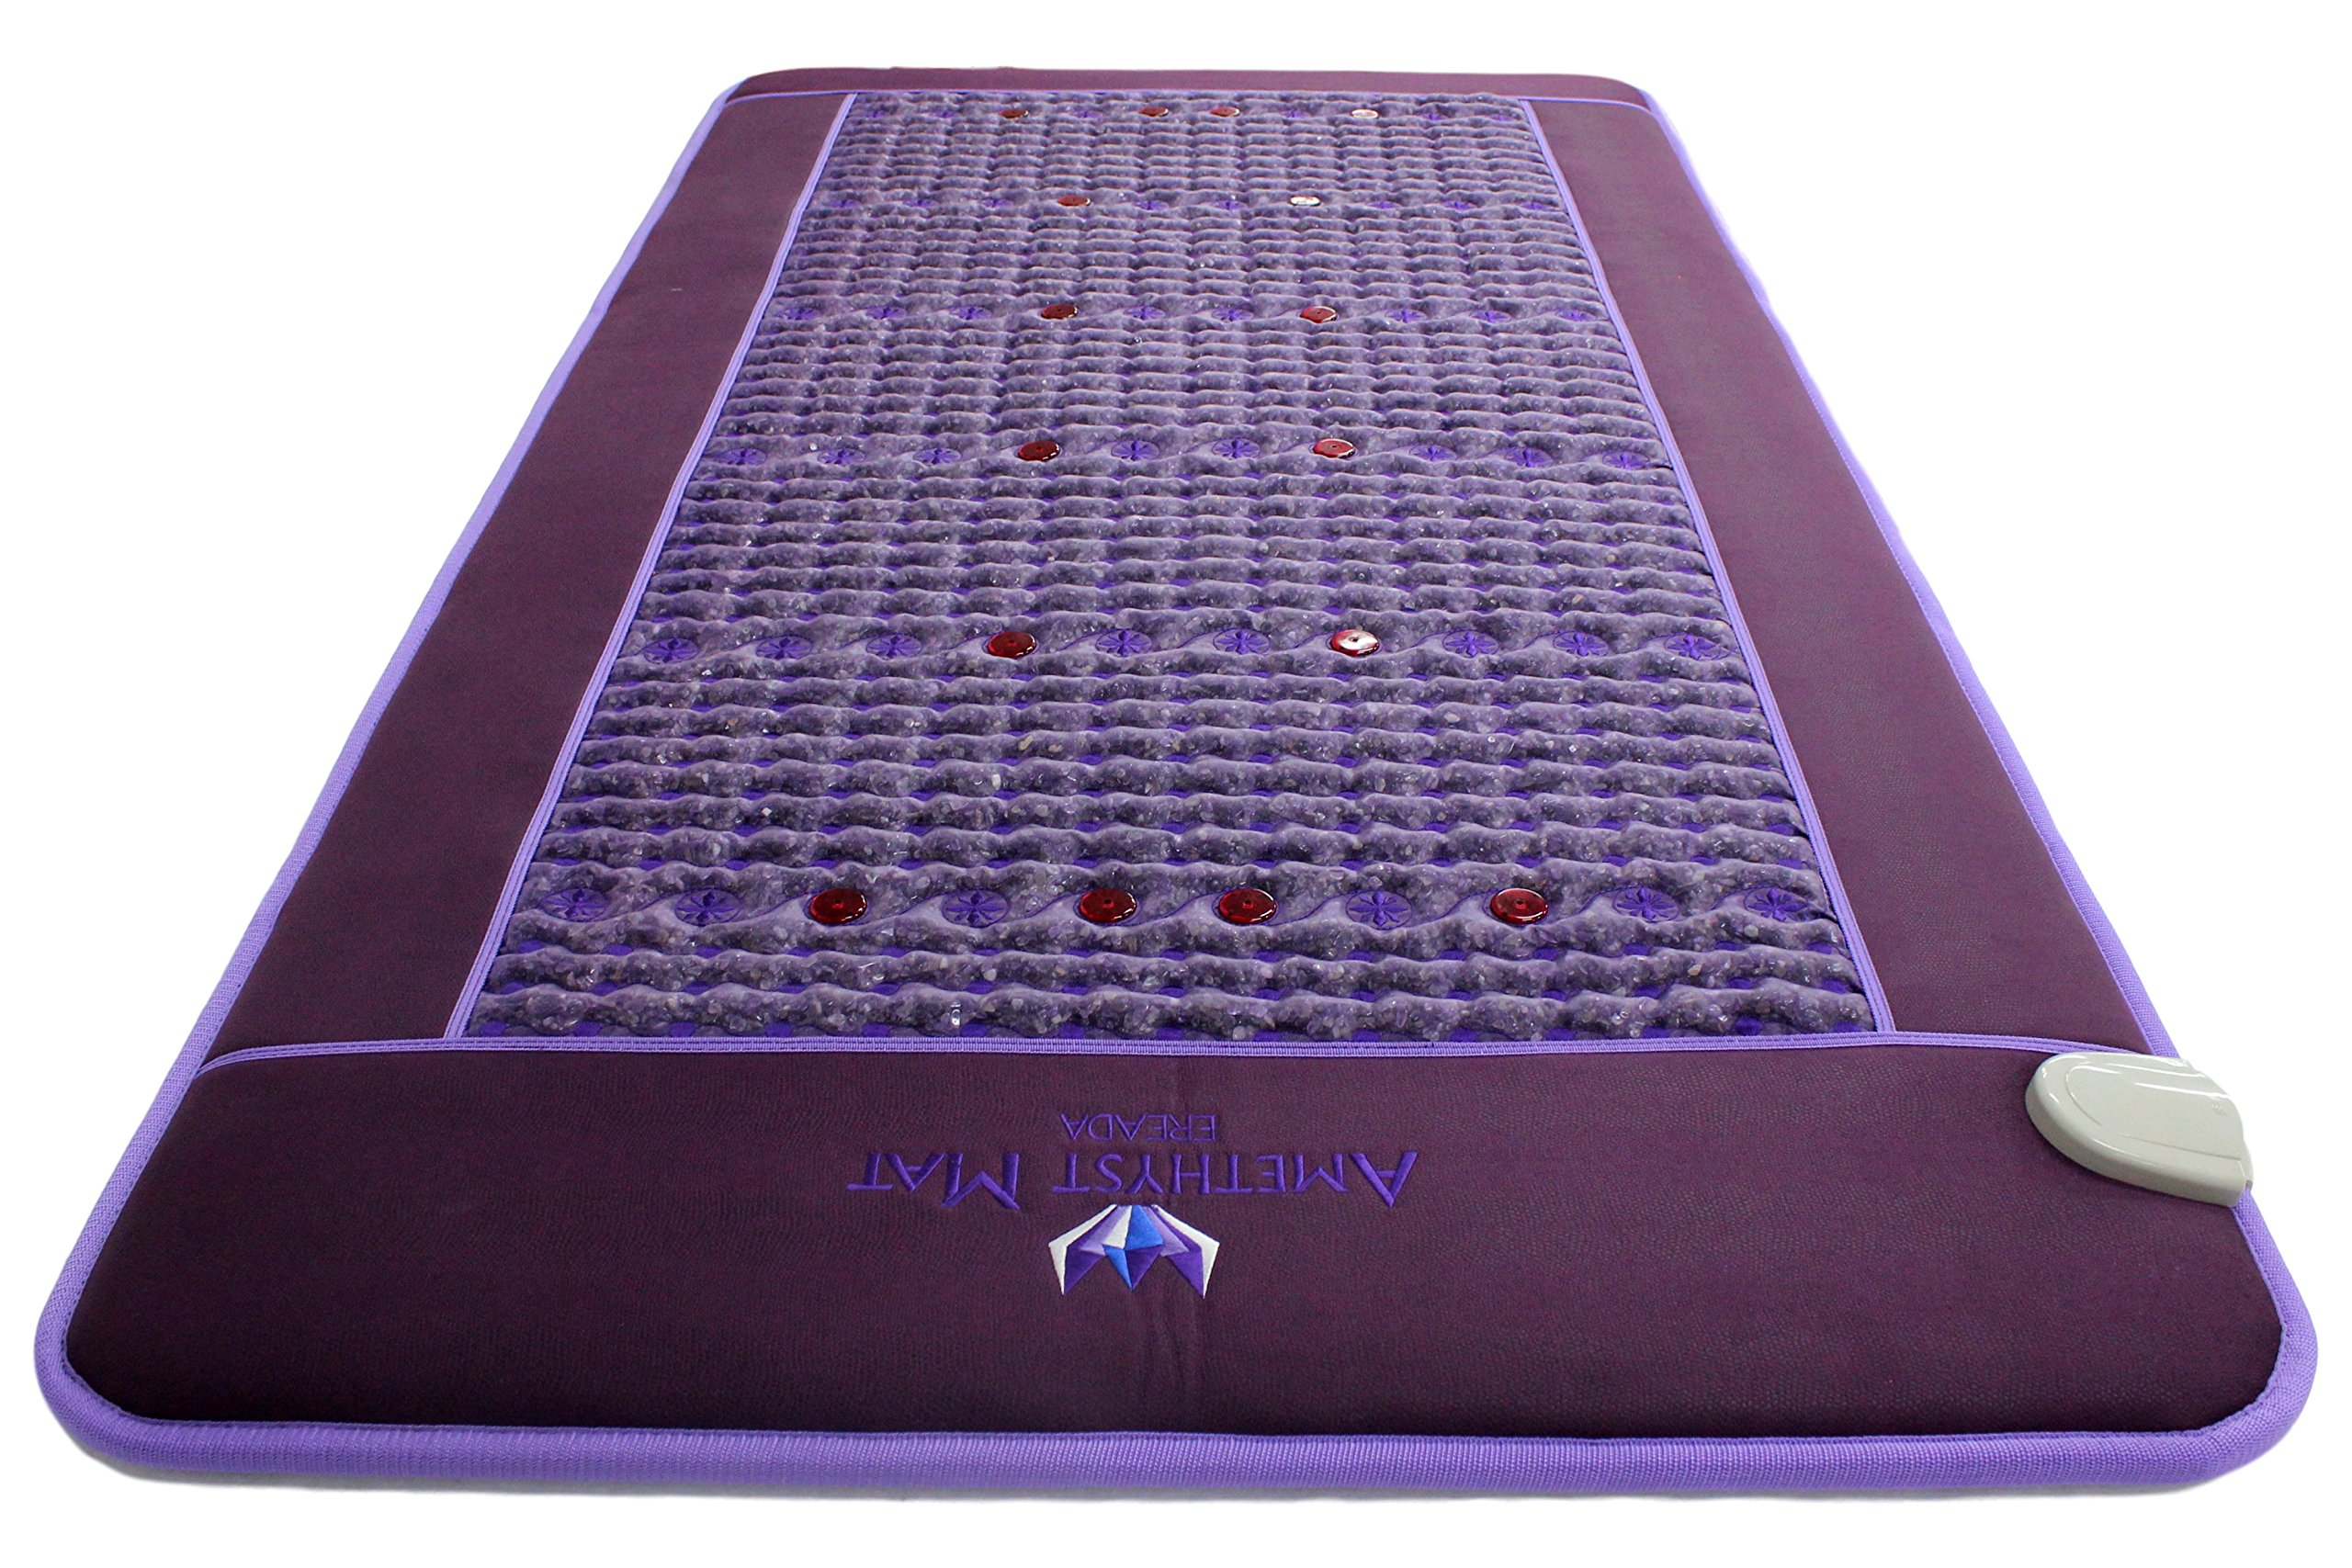 Far Infrared Amethyst Mat - FIR Heat - Bio Magnetic Field - PEMF - Negative Ions - Red Light Photon Therapy - Natural Amethyst - FDA Registered Korean Manufacturer - Purple (Single (XL) 75''L x 39''W) by Bio Amethyst (Image #8)